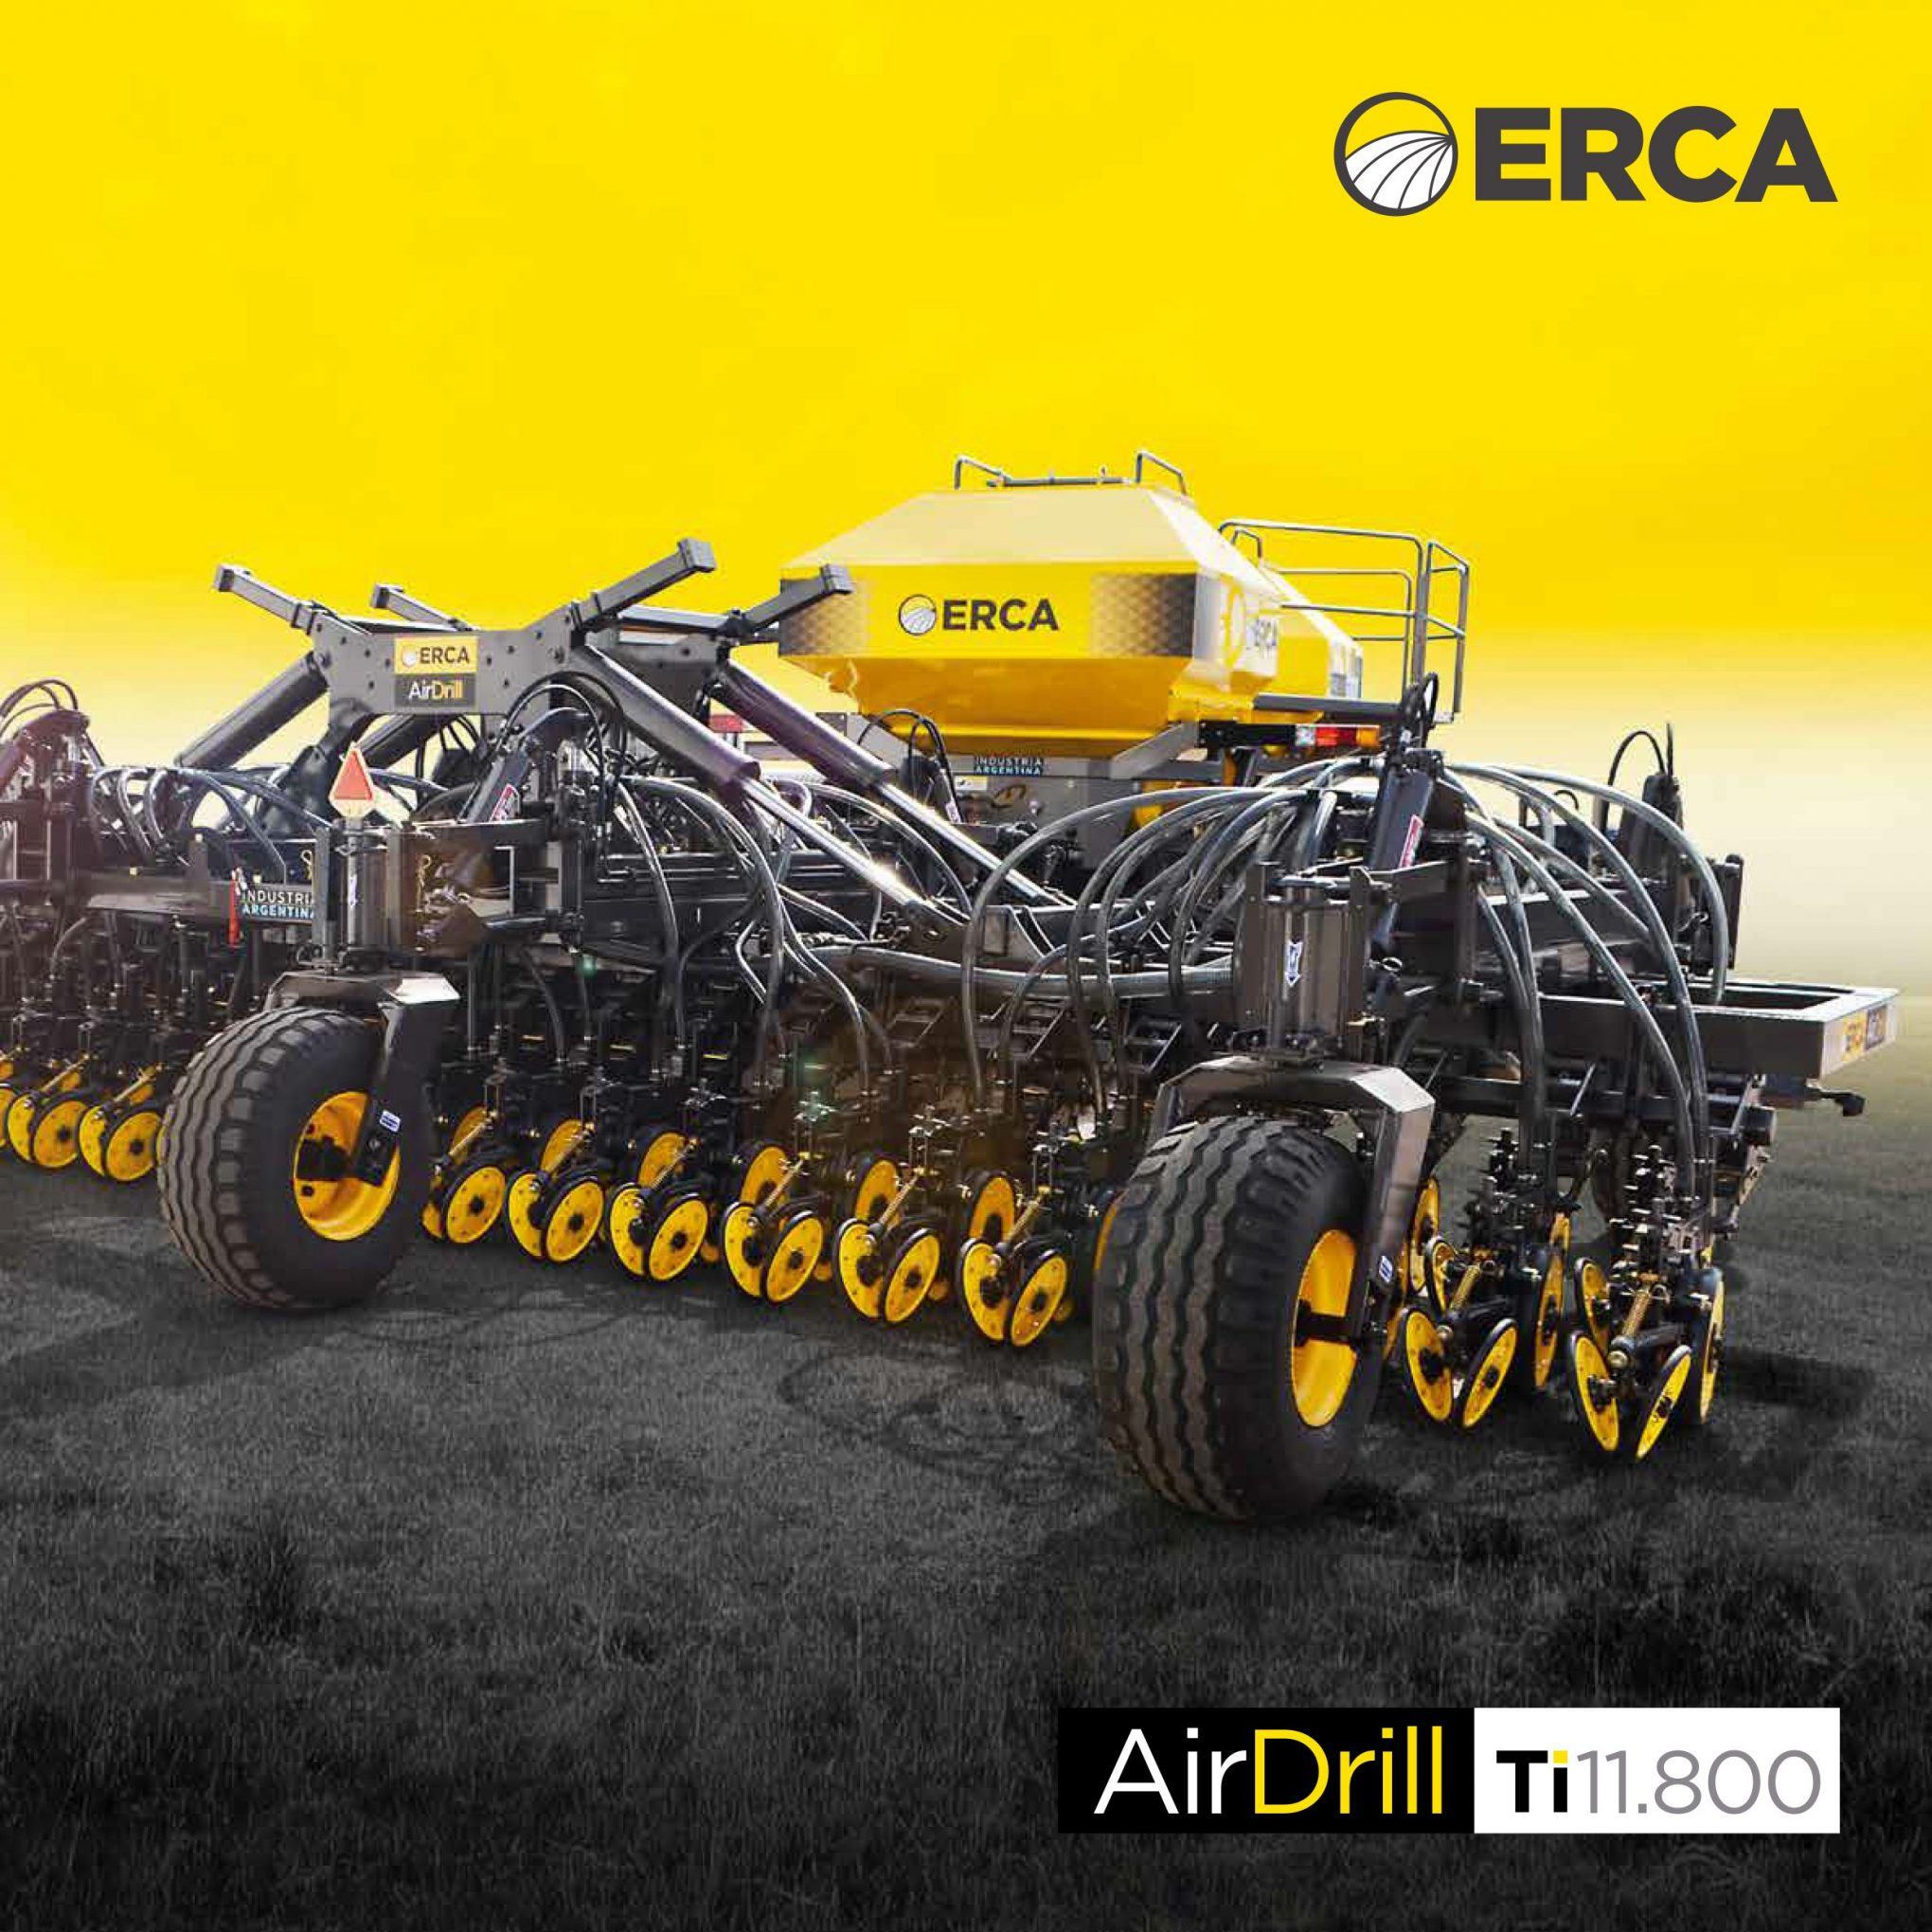 AirDrill